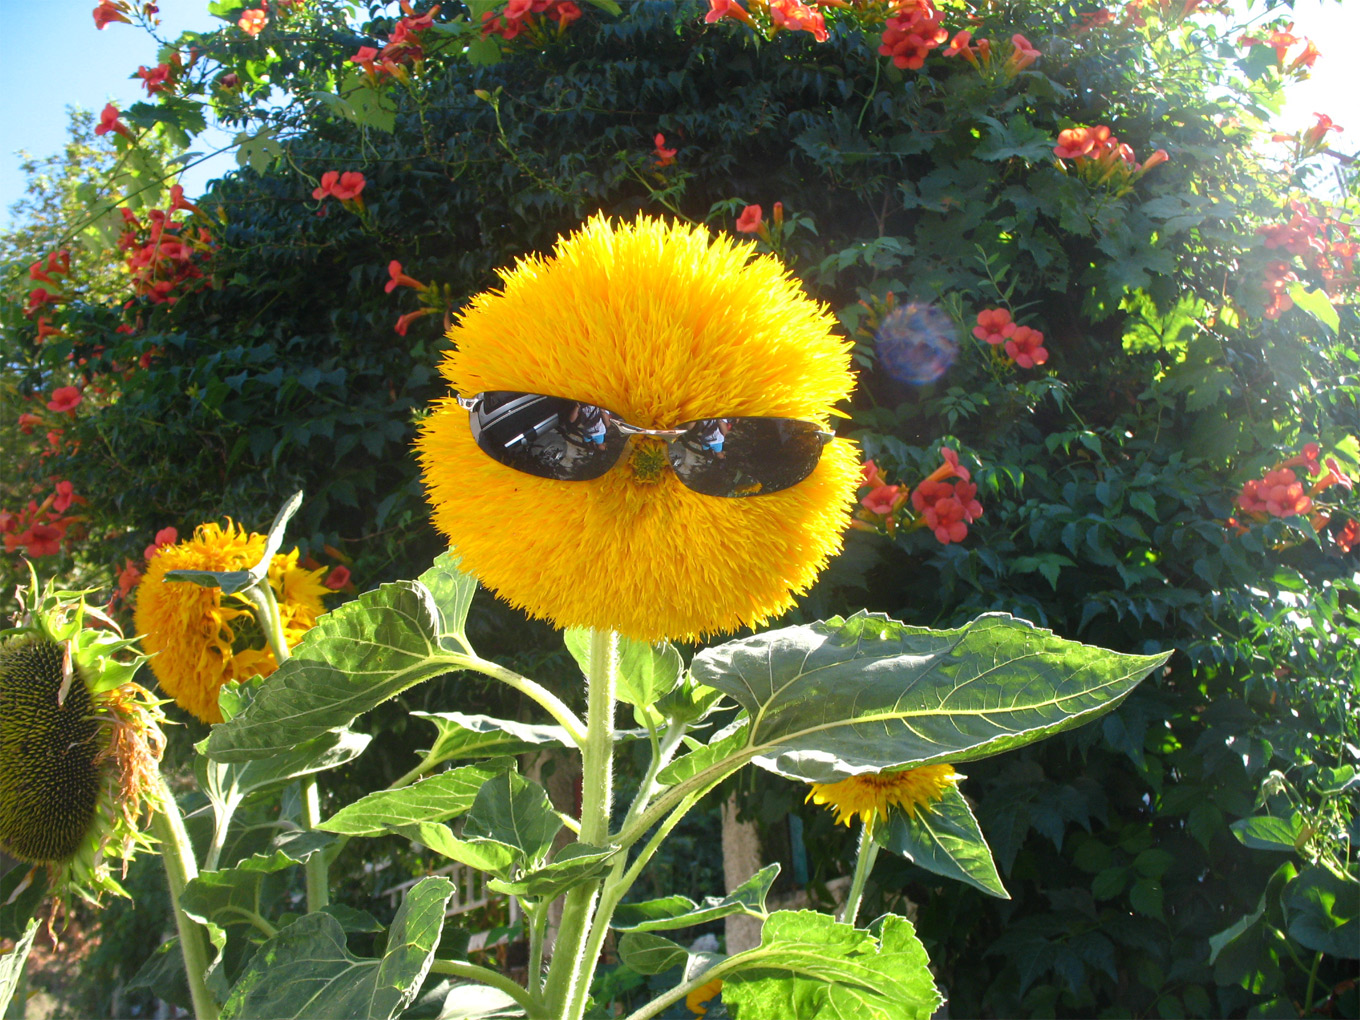 http://bizwebsolutions.co.uk/wp-content/gallery/demonstration-image-gallery/funny-flower.jpg